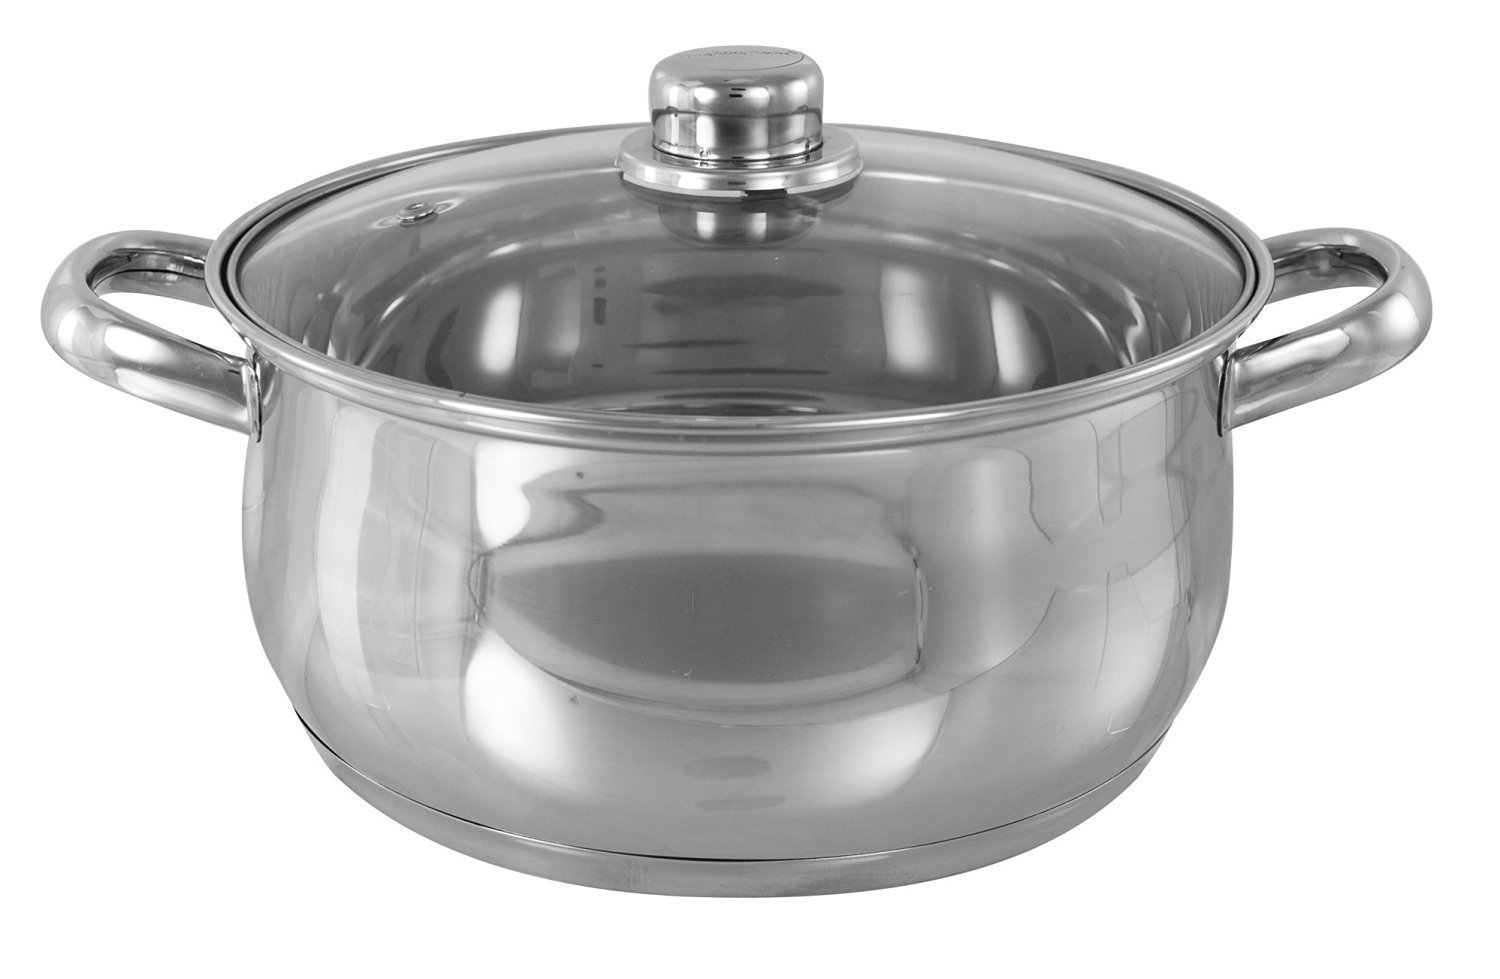 24 Centimetre Premium Quality Stainless Steel Induction Base Deep Casserole Pot with Glass Vented Lid CookSpace